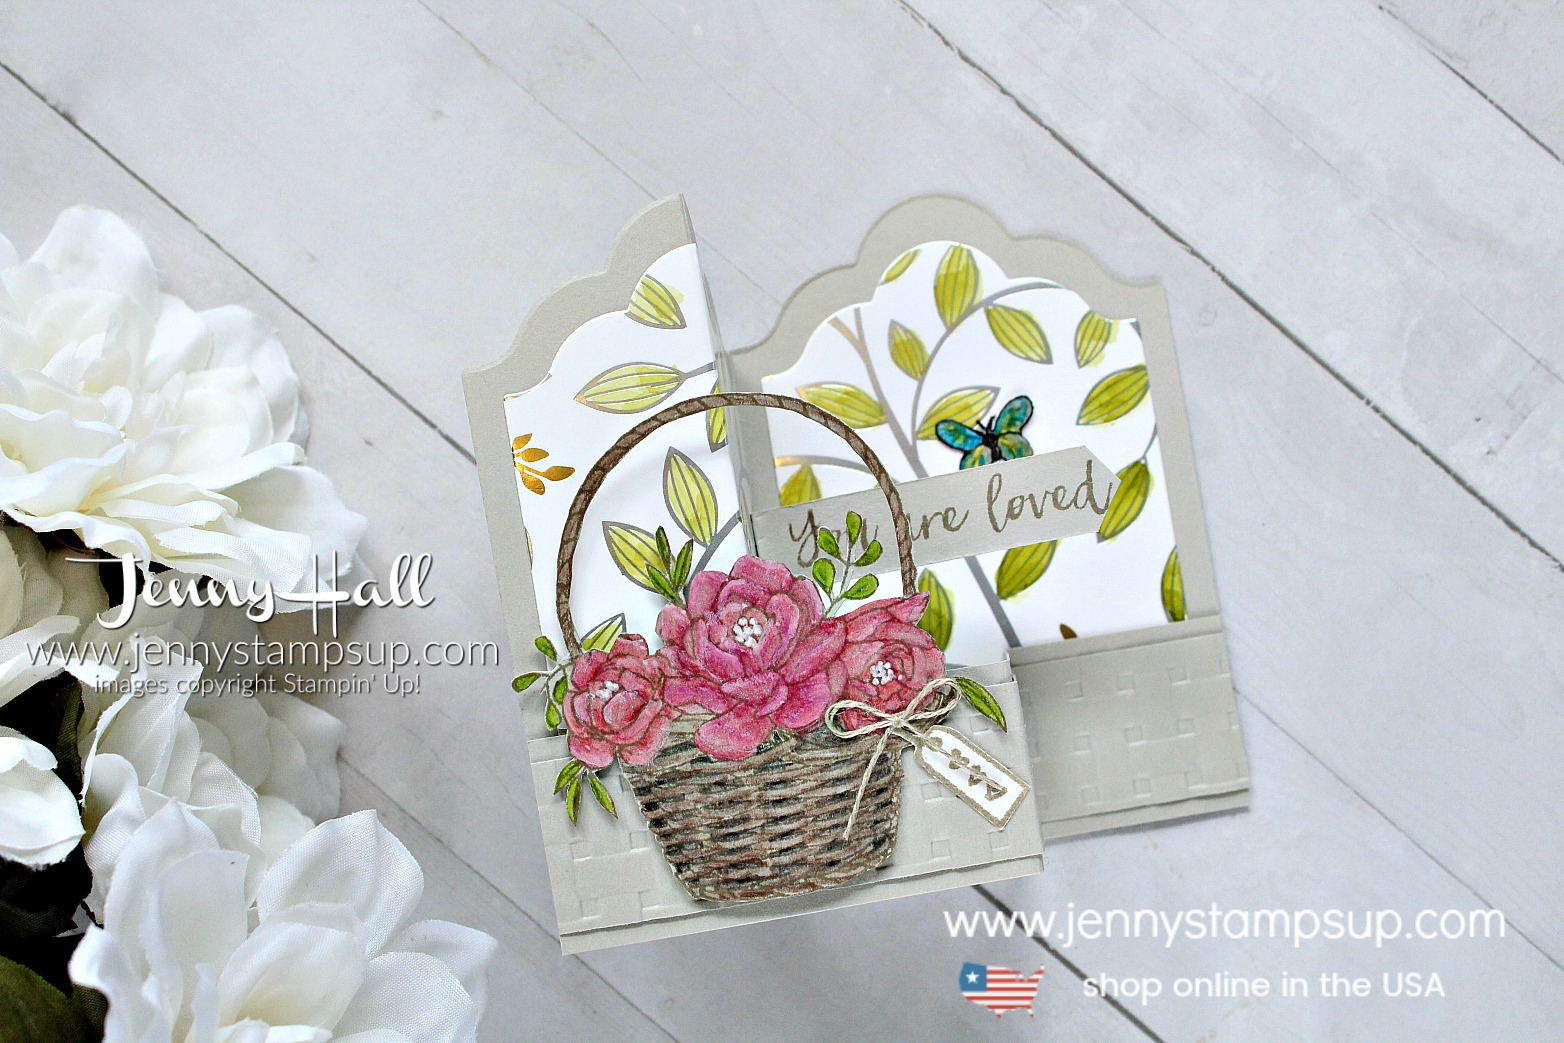 Blossoming Basket Double Z Fold Box Card created by Jenny Hall at www.jennyhalldesign.com for #cardmaking #addinktivedesigns #addinktivedesignteam #doublezfold #boxcard #lotsoflabelsdoublezfoldboxcard #jennystampsup #jennyhalldesigns #jennyhallstampinup #fancyfoldcard #blossomingbasket #Basketweaveembossingfolder #watercolorpencils #addinktive #springtimefoildsp #stampinblends #stamping #Coloredpencils #watercolor #blenderpen